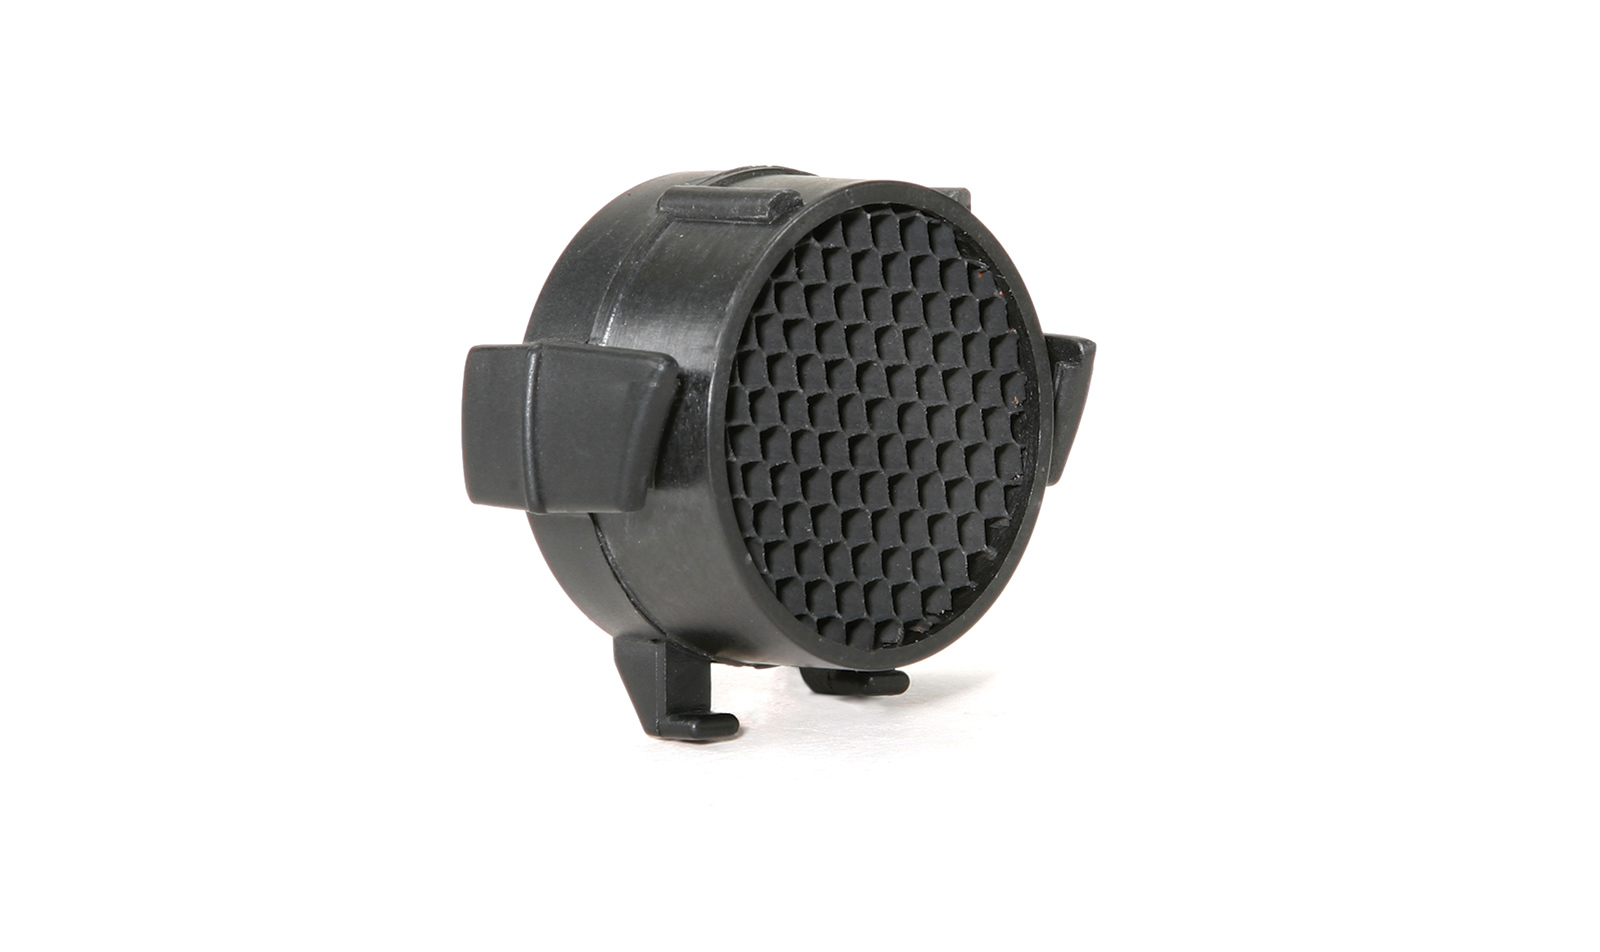 Trijicon ACOG® 3.5x35 Tenebraex killFLASH® Anti-Reflection Device